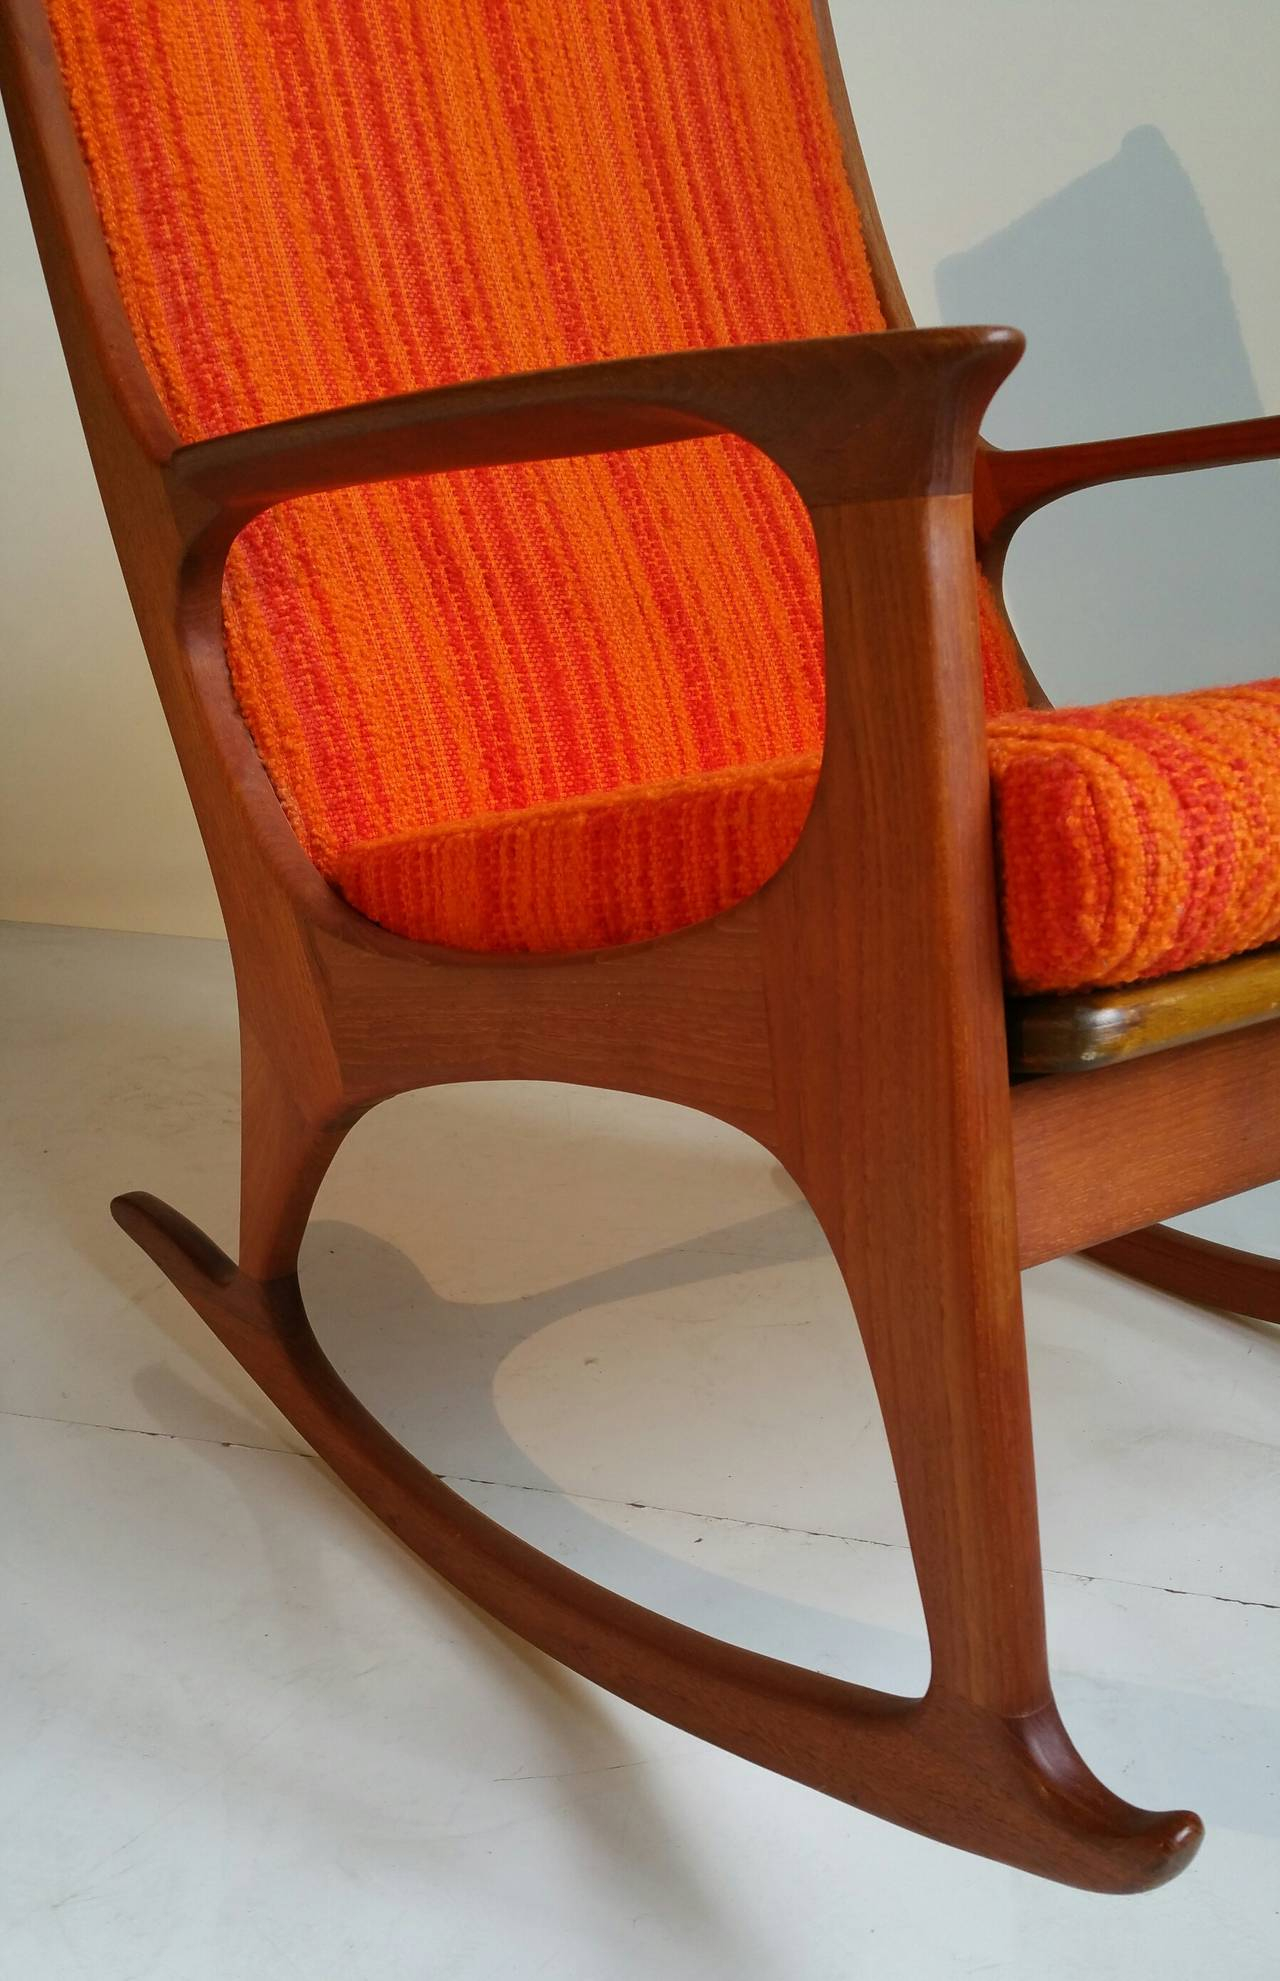 Midcentury Danish Modern Teak Rocking Chair Throughout Mid Century Fabric Rocking Chairs (View 15 of 20)